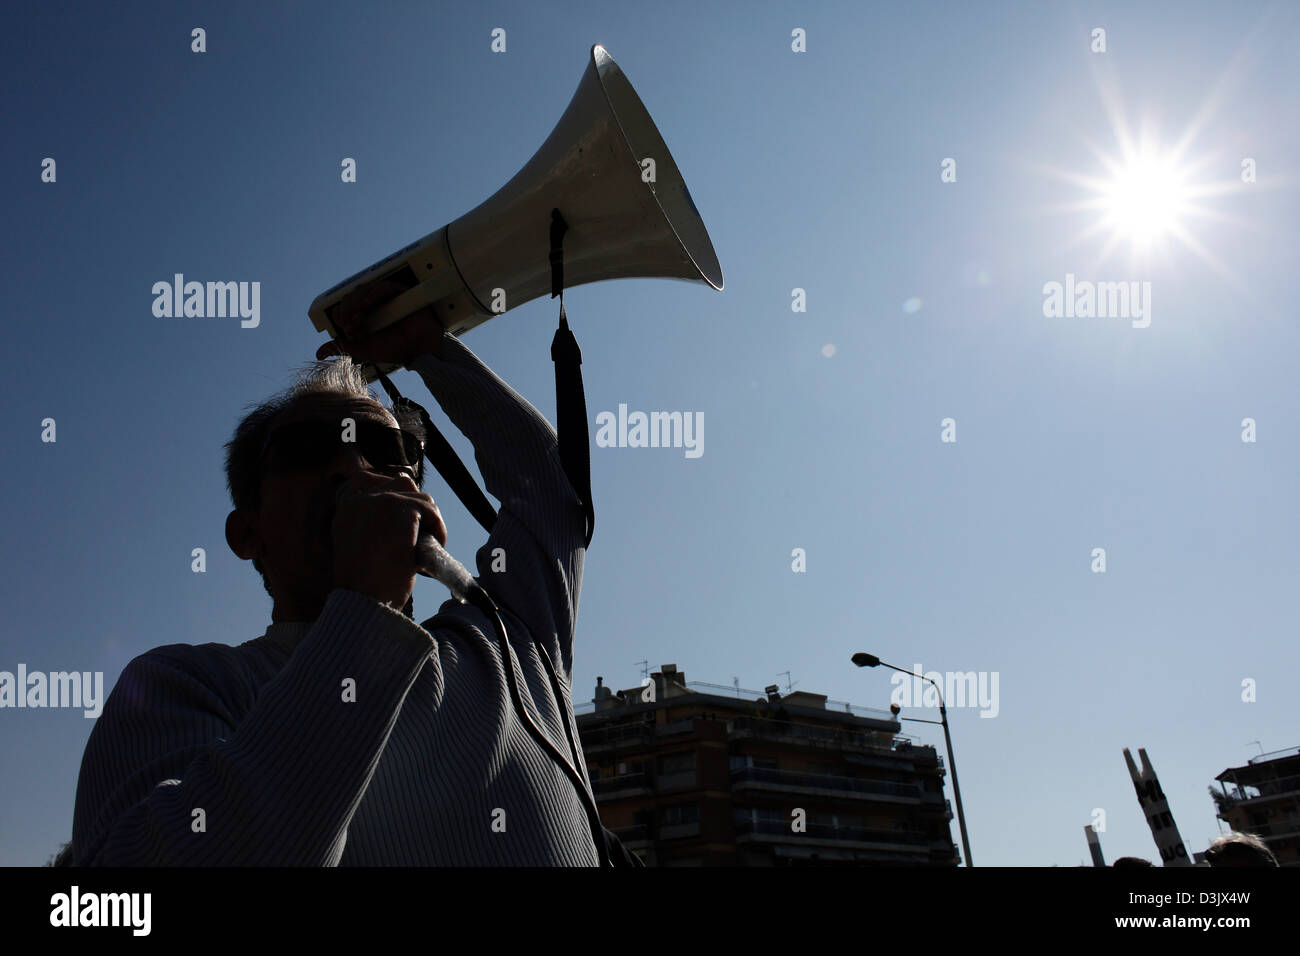 Thessaloniki, Greece. 20th February 2013. Protester shout slogans with a loud hailer. Greece's largest labour - Stock Image